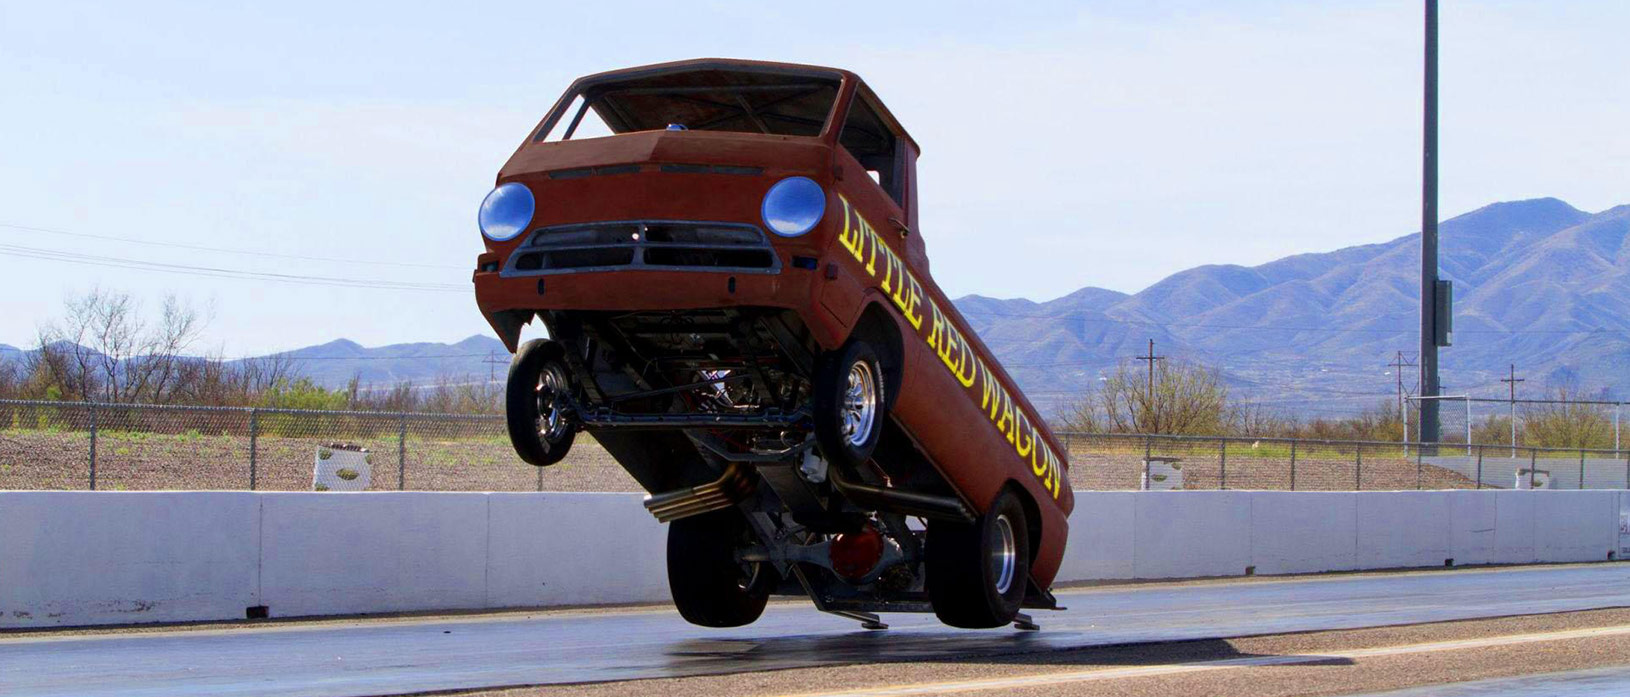 The Dodge little red waggon off all four wheels.